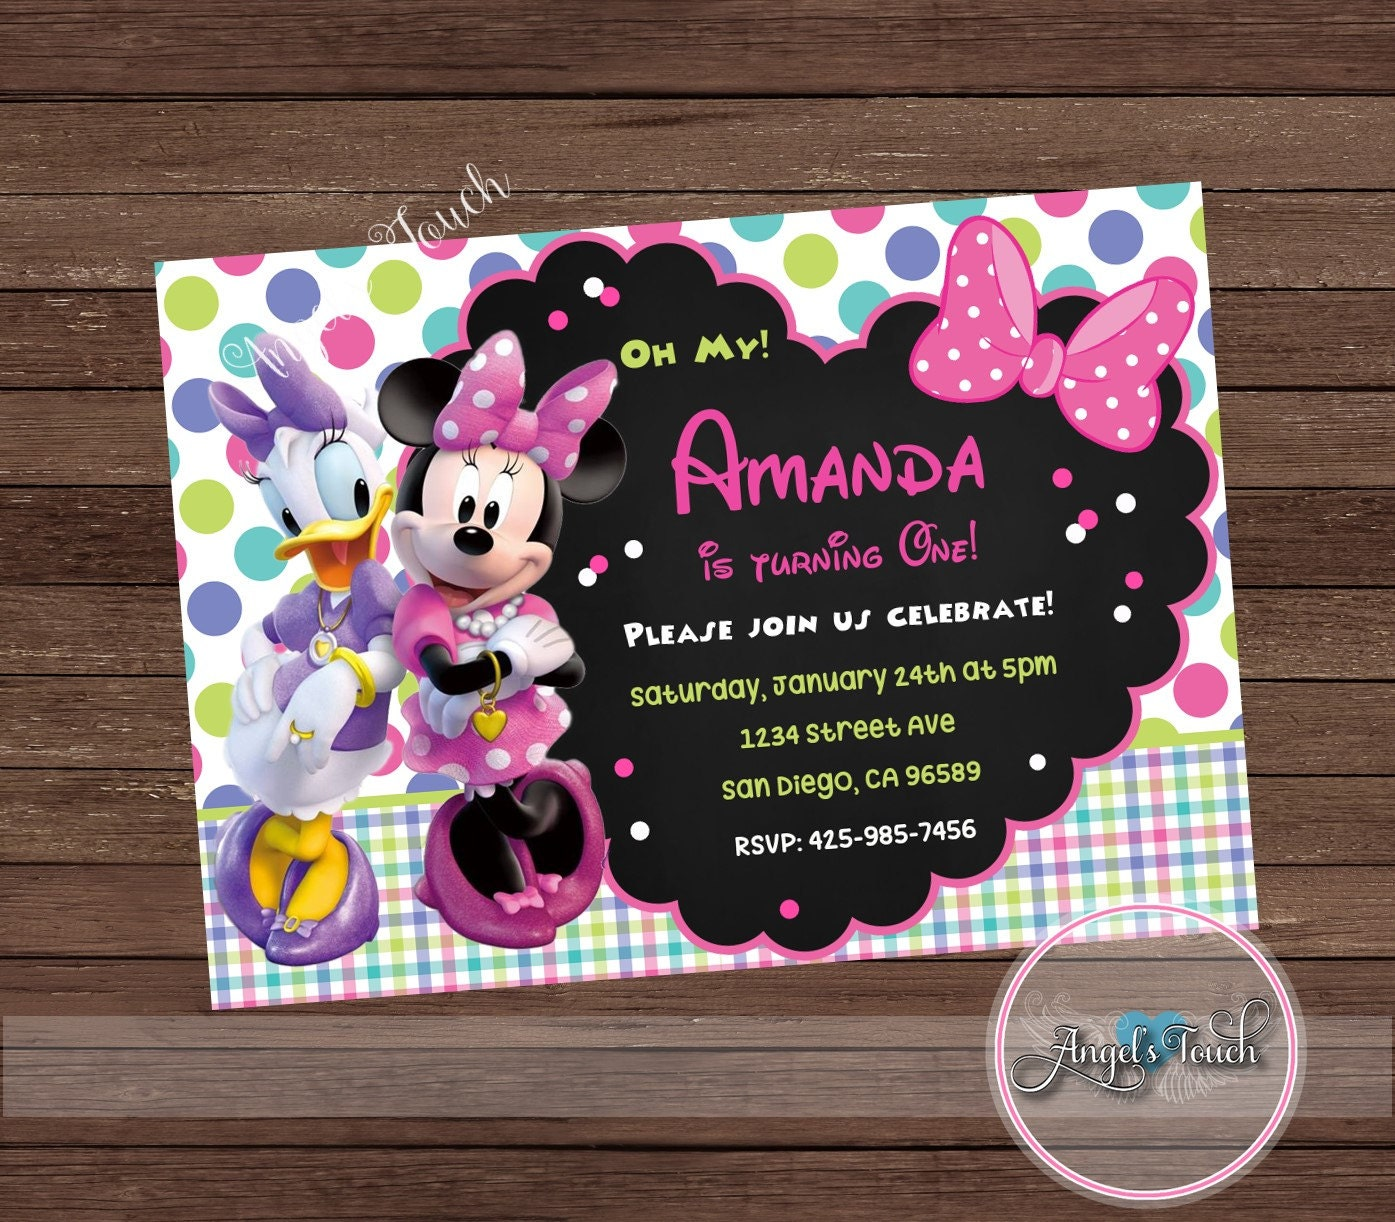 Minnie Mouse And Daisy Duck Party Invitation